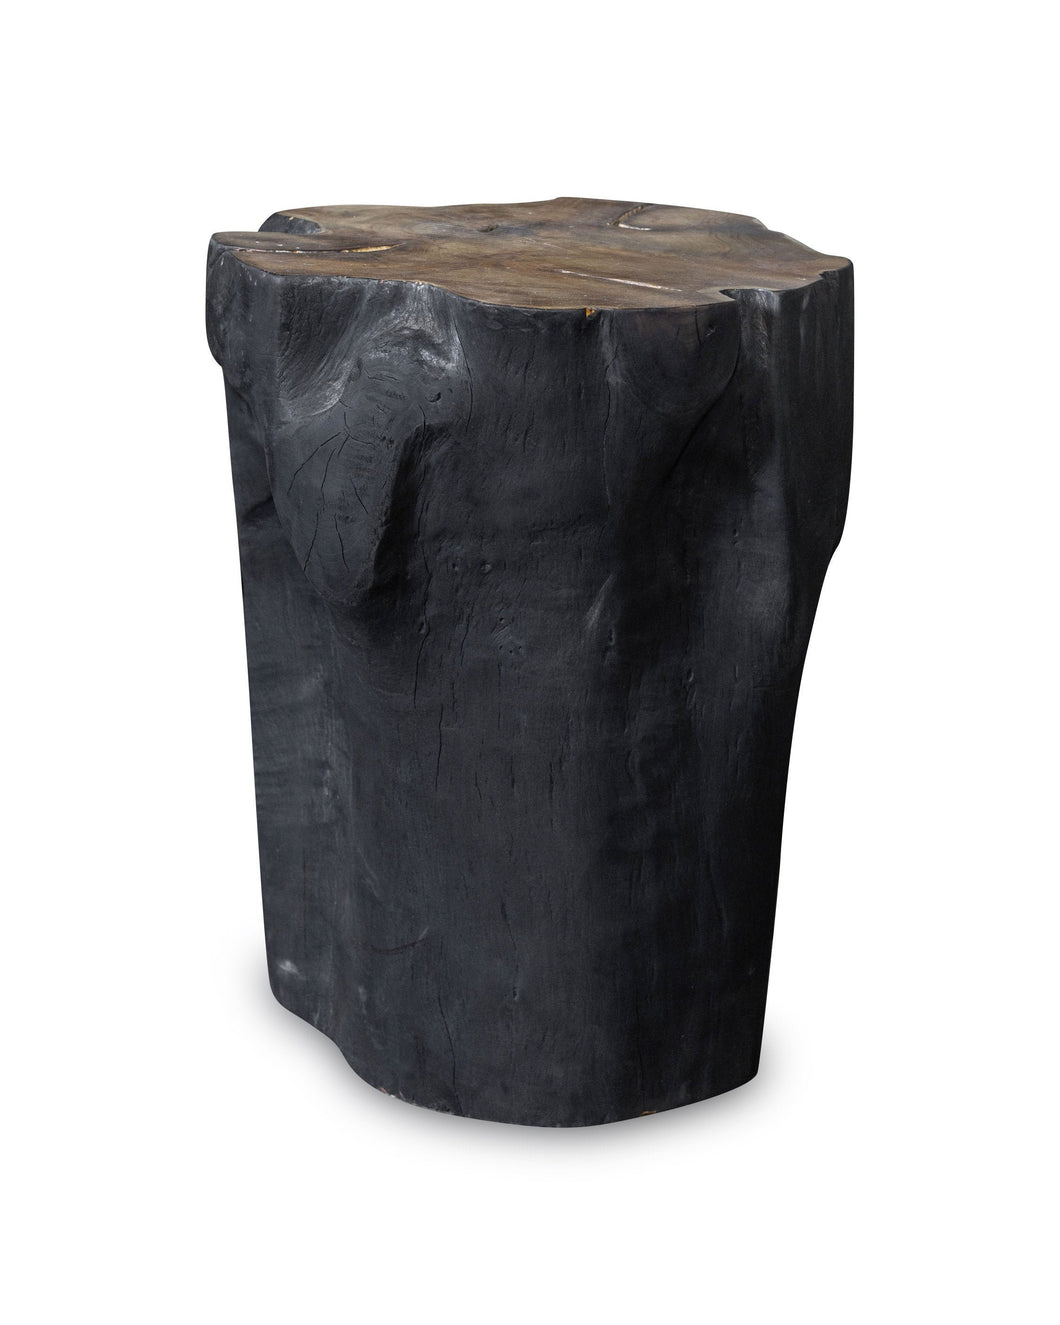 Solid Teak Wood Side Table, Natural Black Tree Stump Stool or End Table #19    18